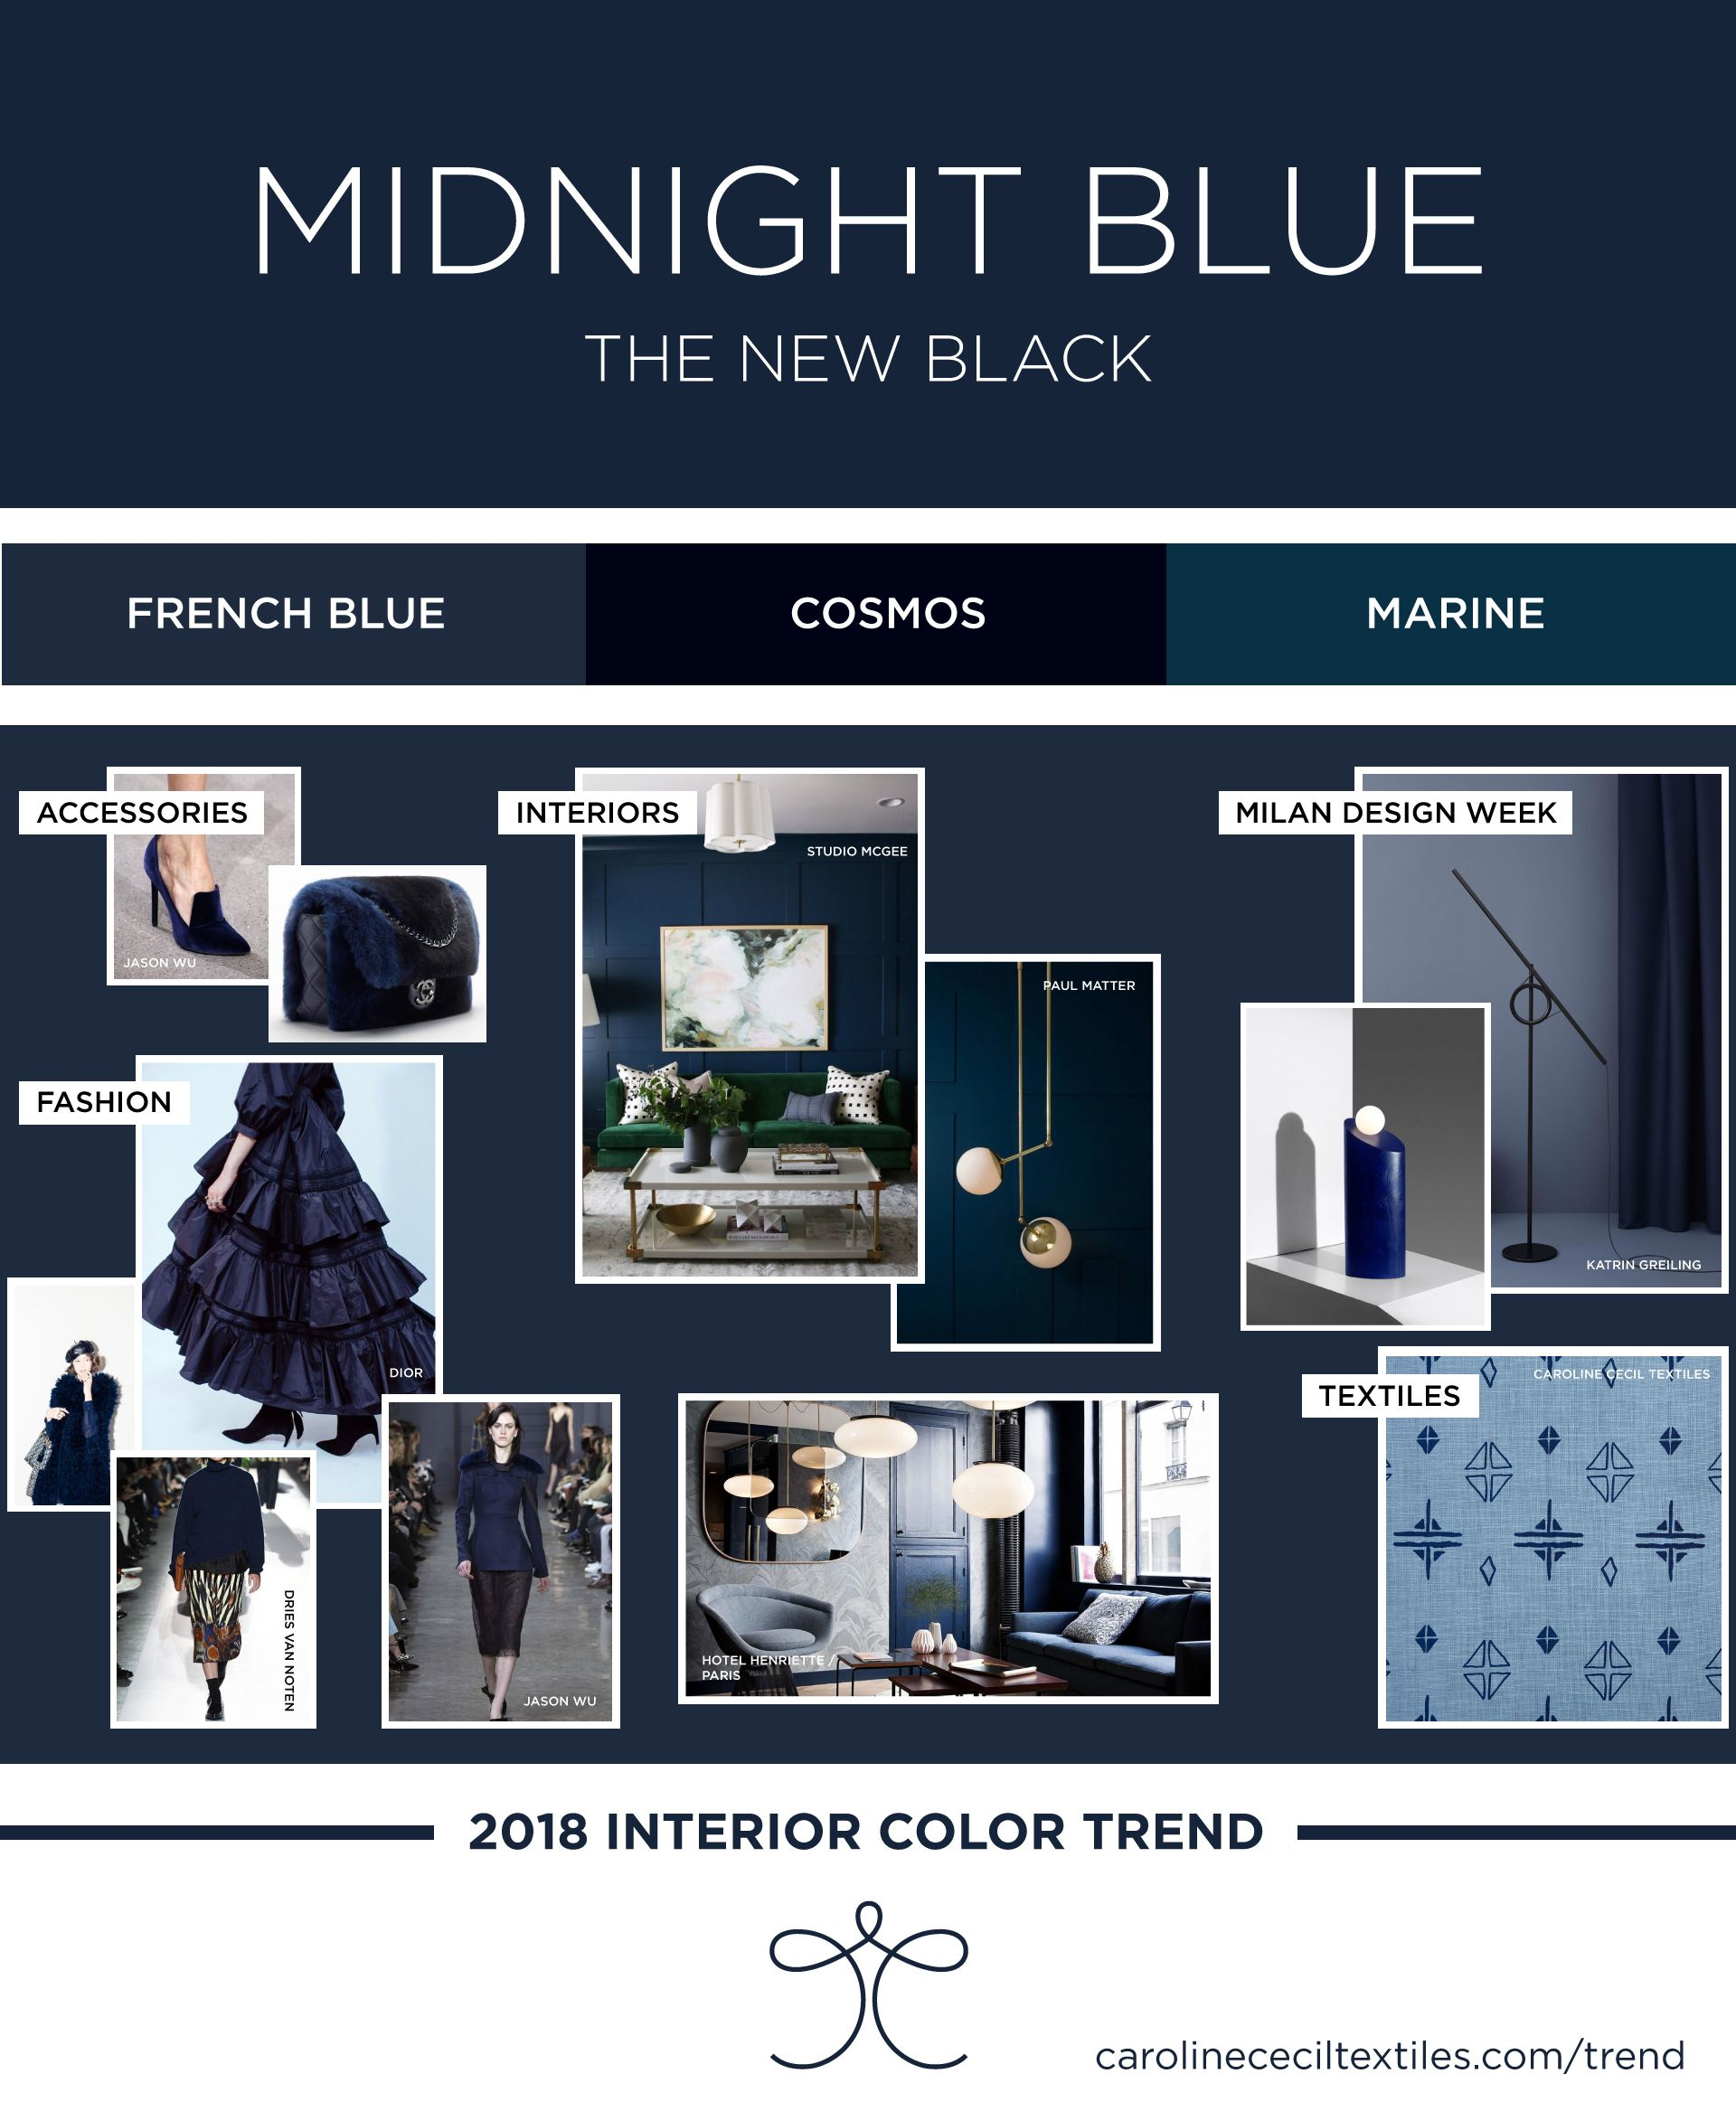 2018 Home Decor Color Trends Interior Color Trends 2018 Indigo Blue Midnight Blue